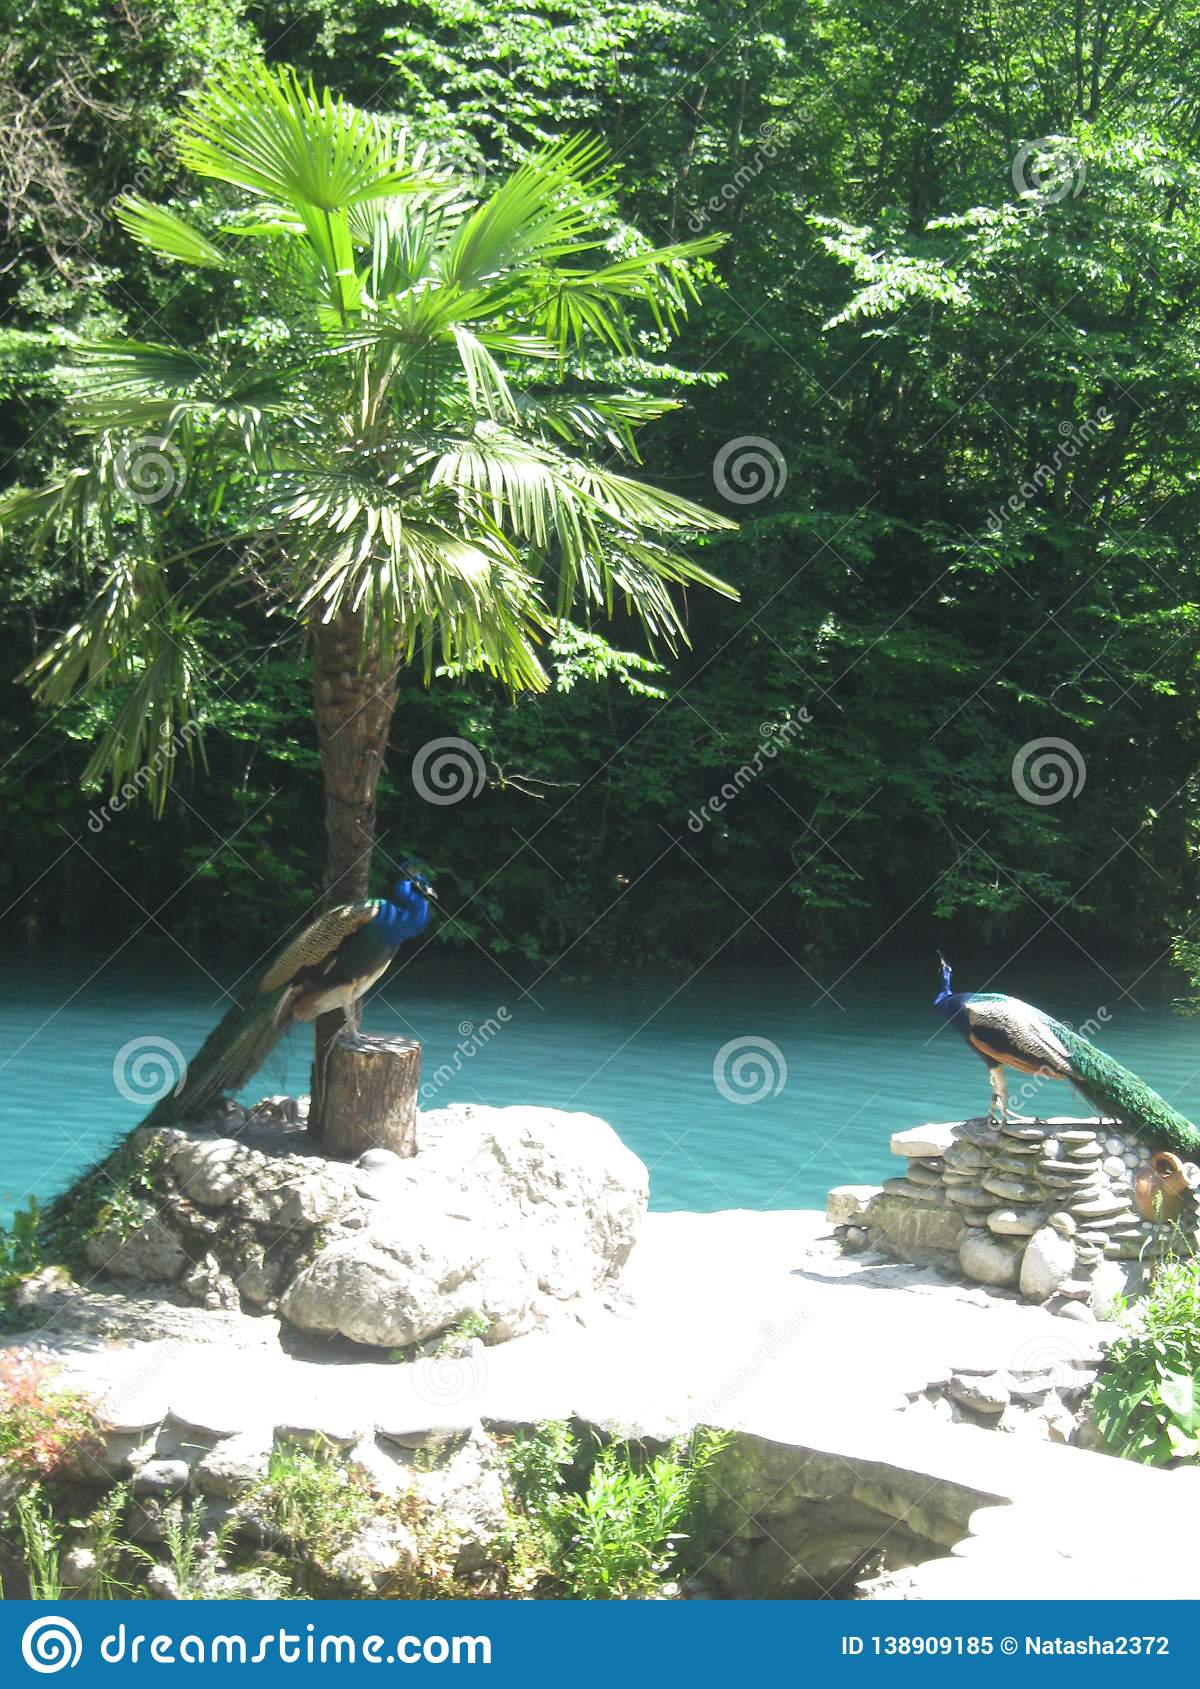 Peacocks on a background of blue lake, stones and palm trees